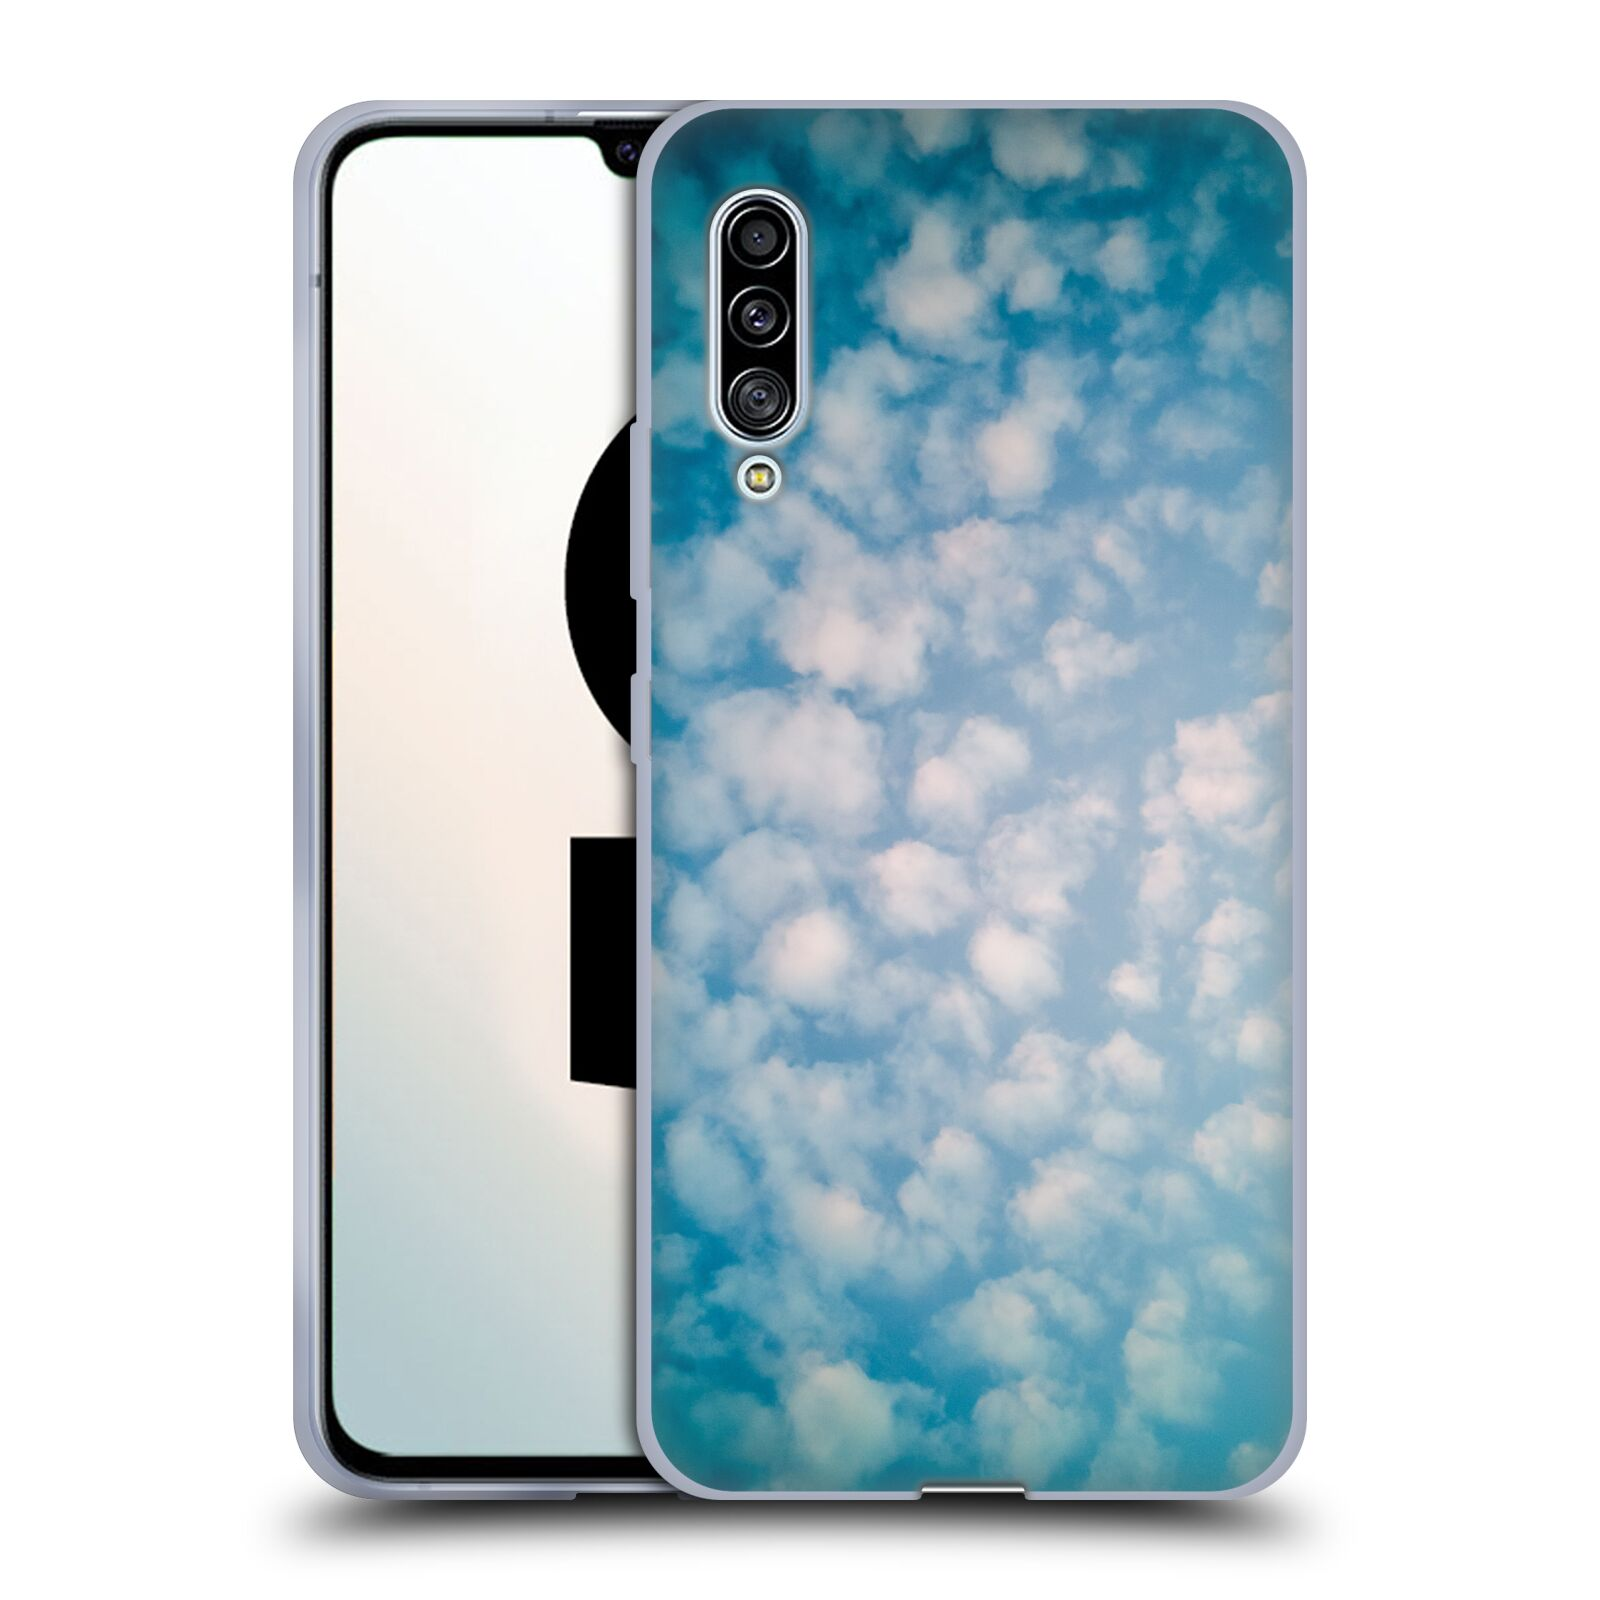 Official PLdesign Clouds Altocumulus Gel Case for Samsung Galaxy A90 5G (2019)